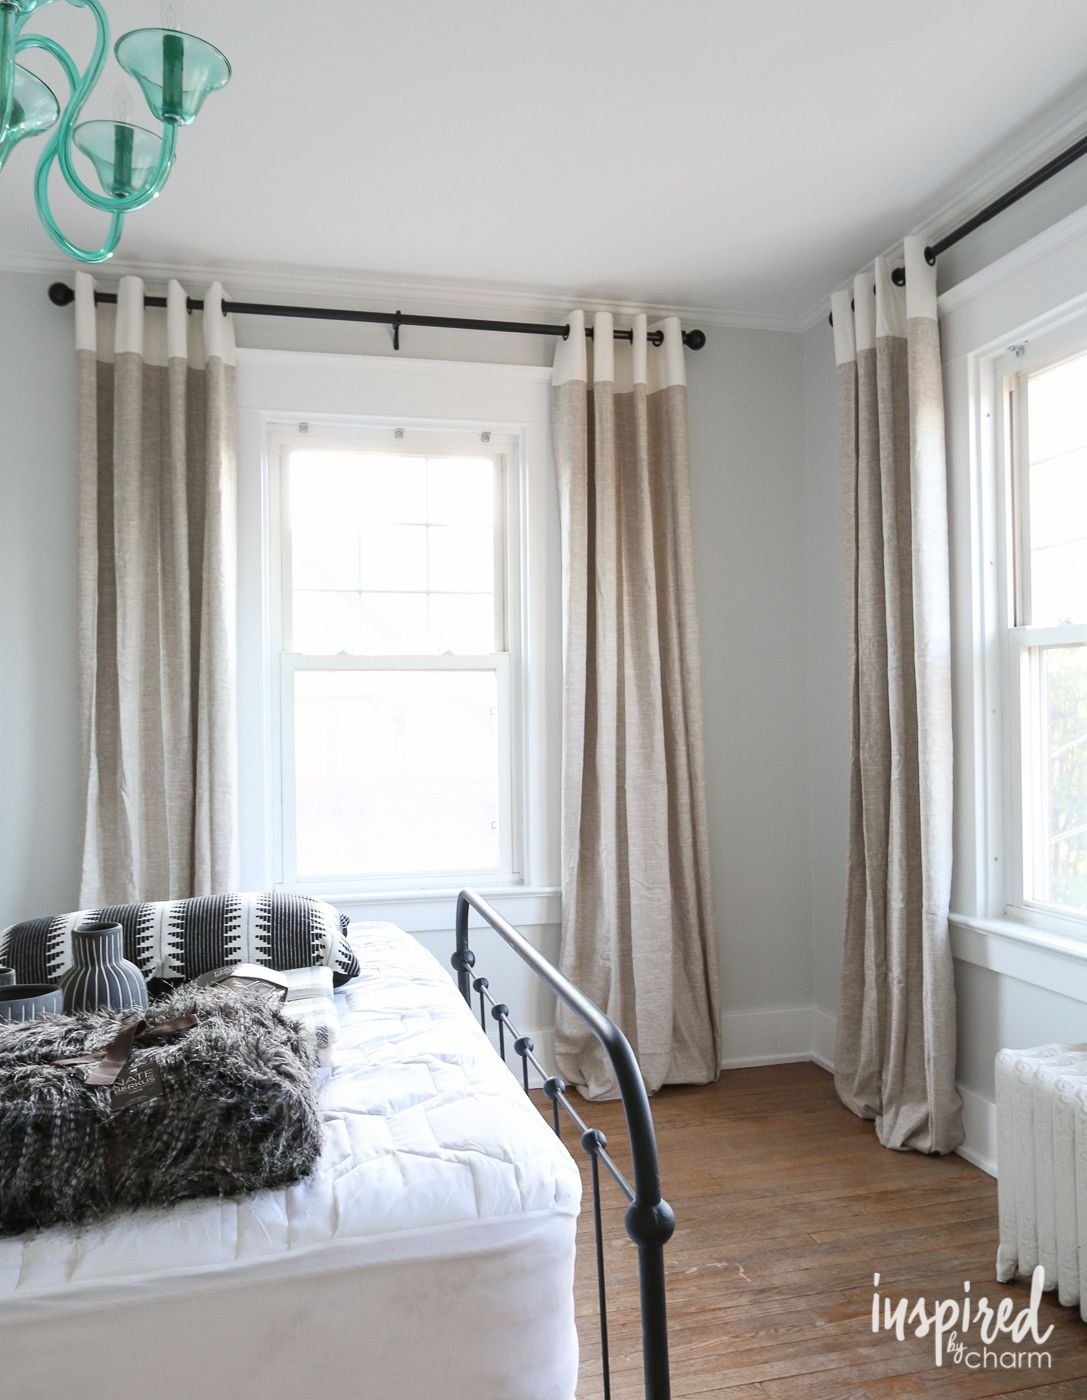 Guest Bedroom Curtains Curtains Bedroom Bedroom Layouts For Small Rooms Bay Window Curtains Bedroom images with curtains